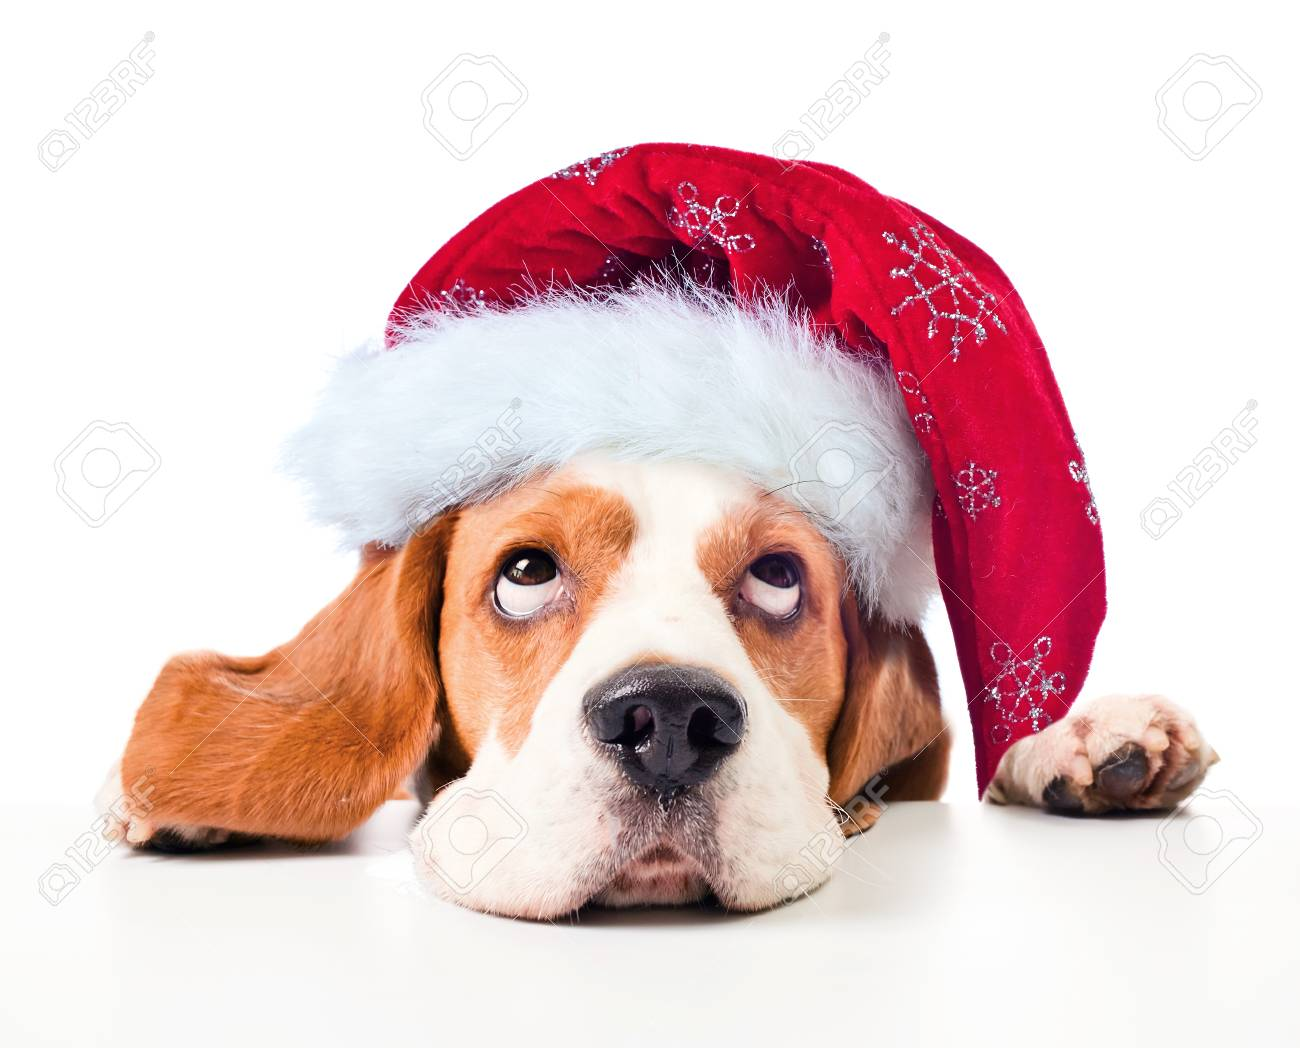 Cute Beagle Puppy In A Red Santa Hat Isolated On White Background Stock Photo Picture And Royalty Free Image Image 90904703